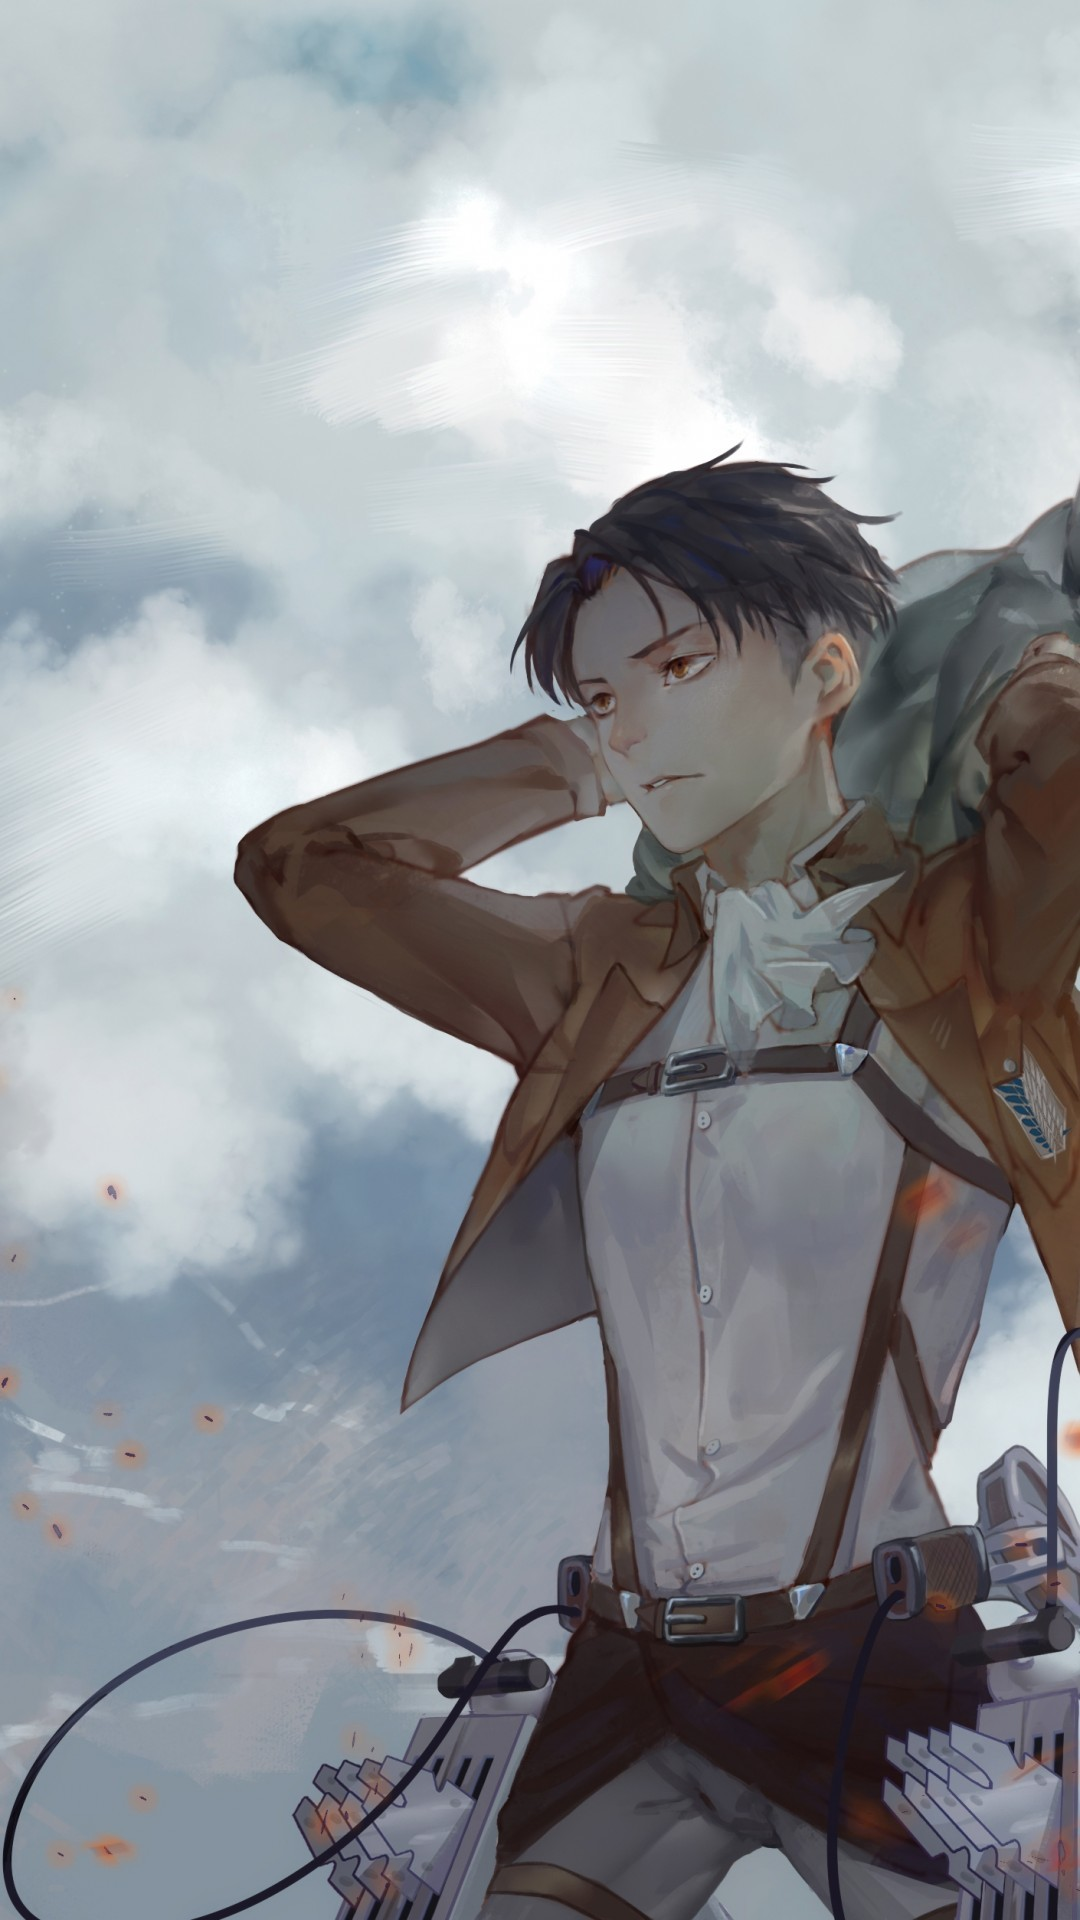 Attack On Titan Levi Wallpaper Phone Levi Attack On Titan Wallpaper 72 Images Anime Wallapaper Anime Trap Wallpaper Phone Screen Lockscreen 183 Levi Attack On Titan Attack On 17 Best Images